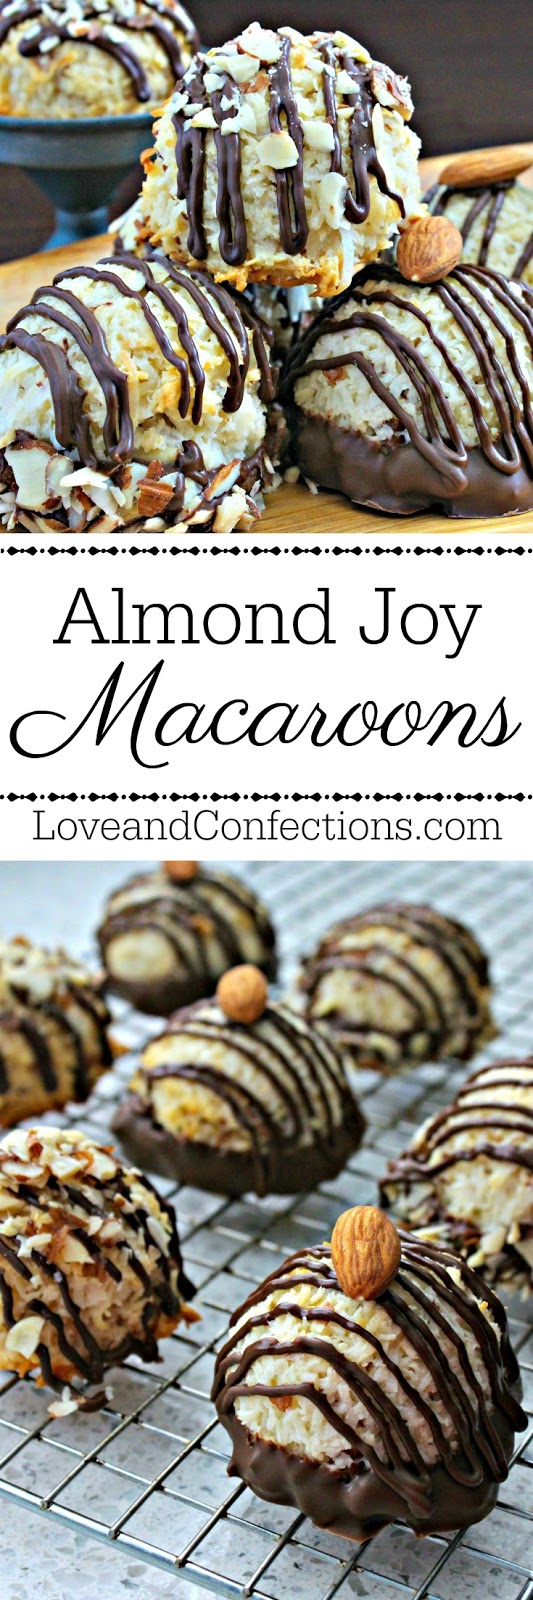 Almond Joy Coconut Macaroons from LoveandConfections.com